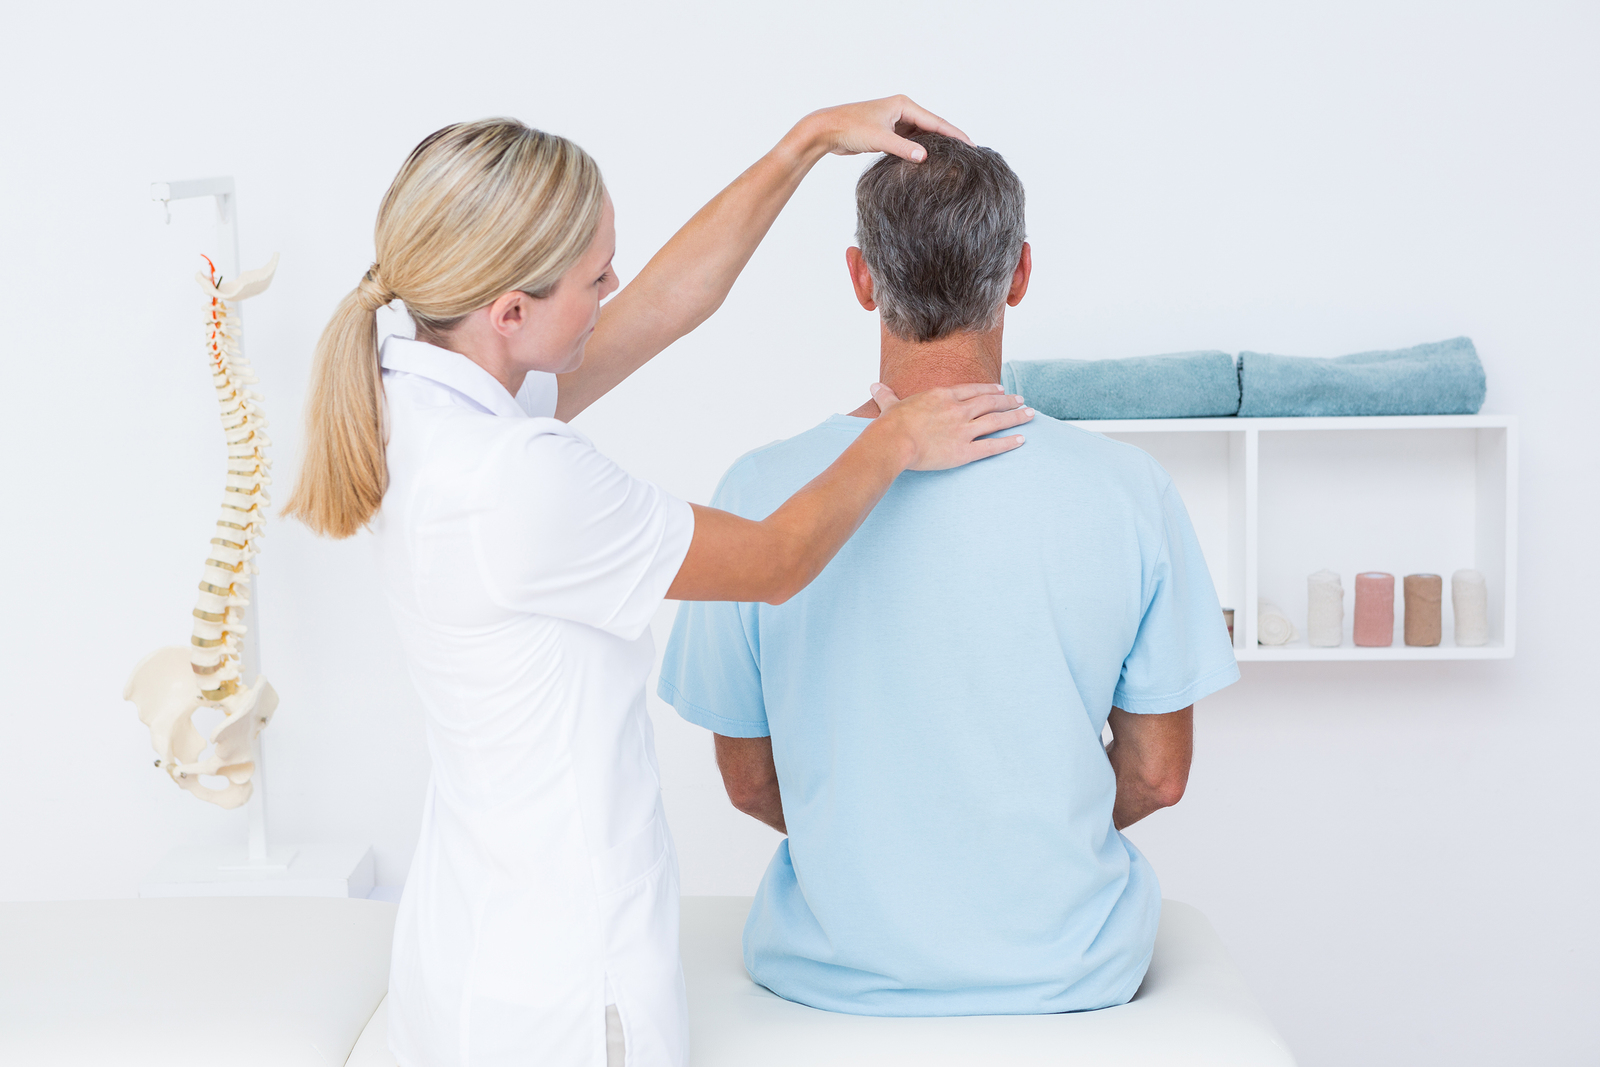 bigstock-Doctor-doing-neck-adjustment-i-95338895.jpg